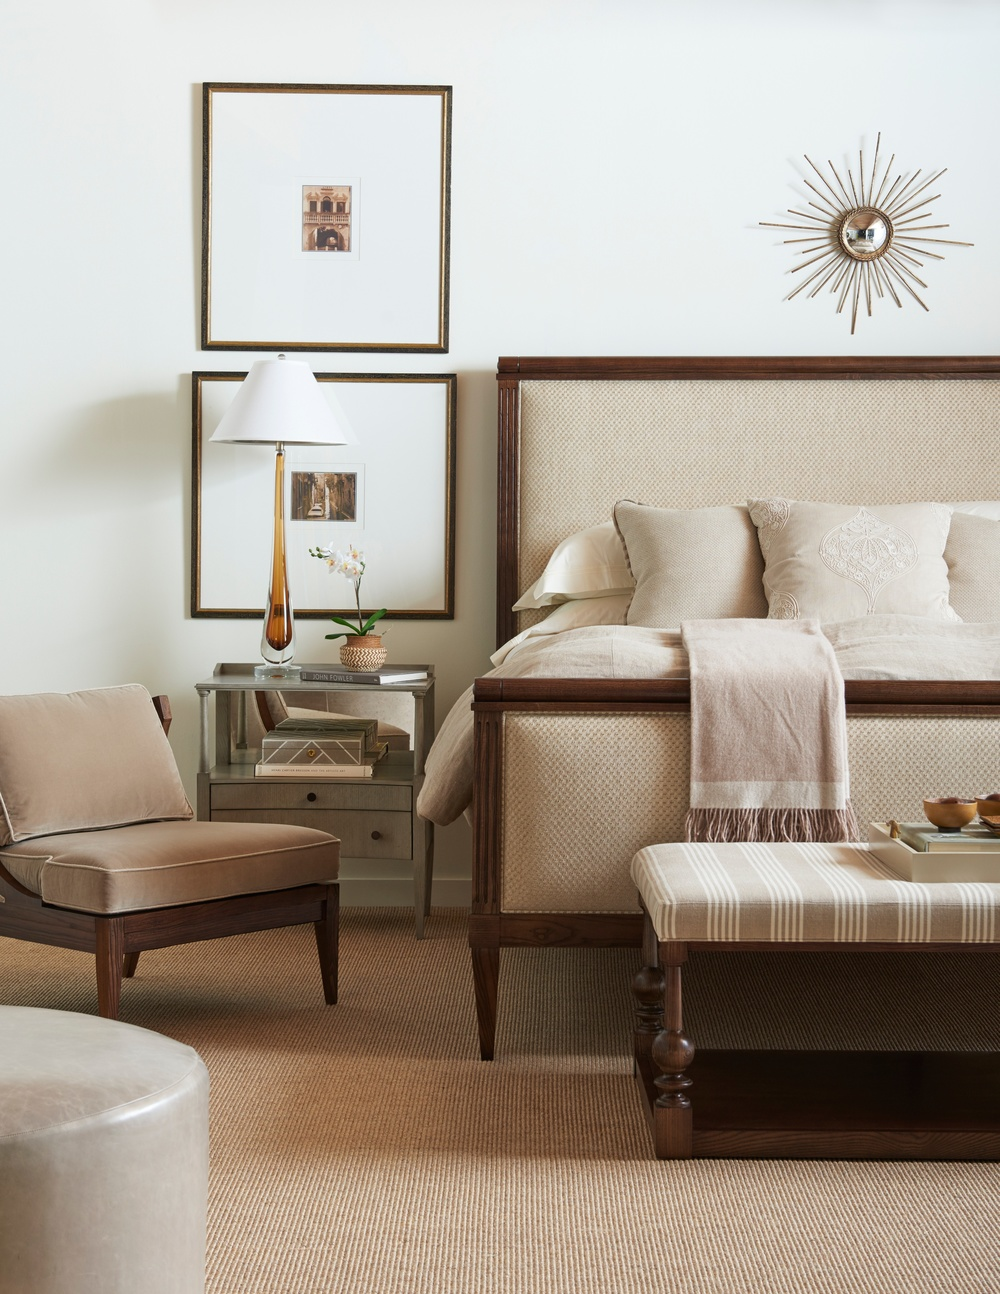 Hickory Chair - Rencourt King Bed